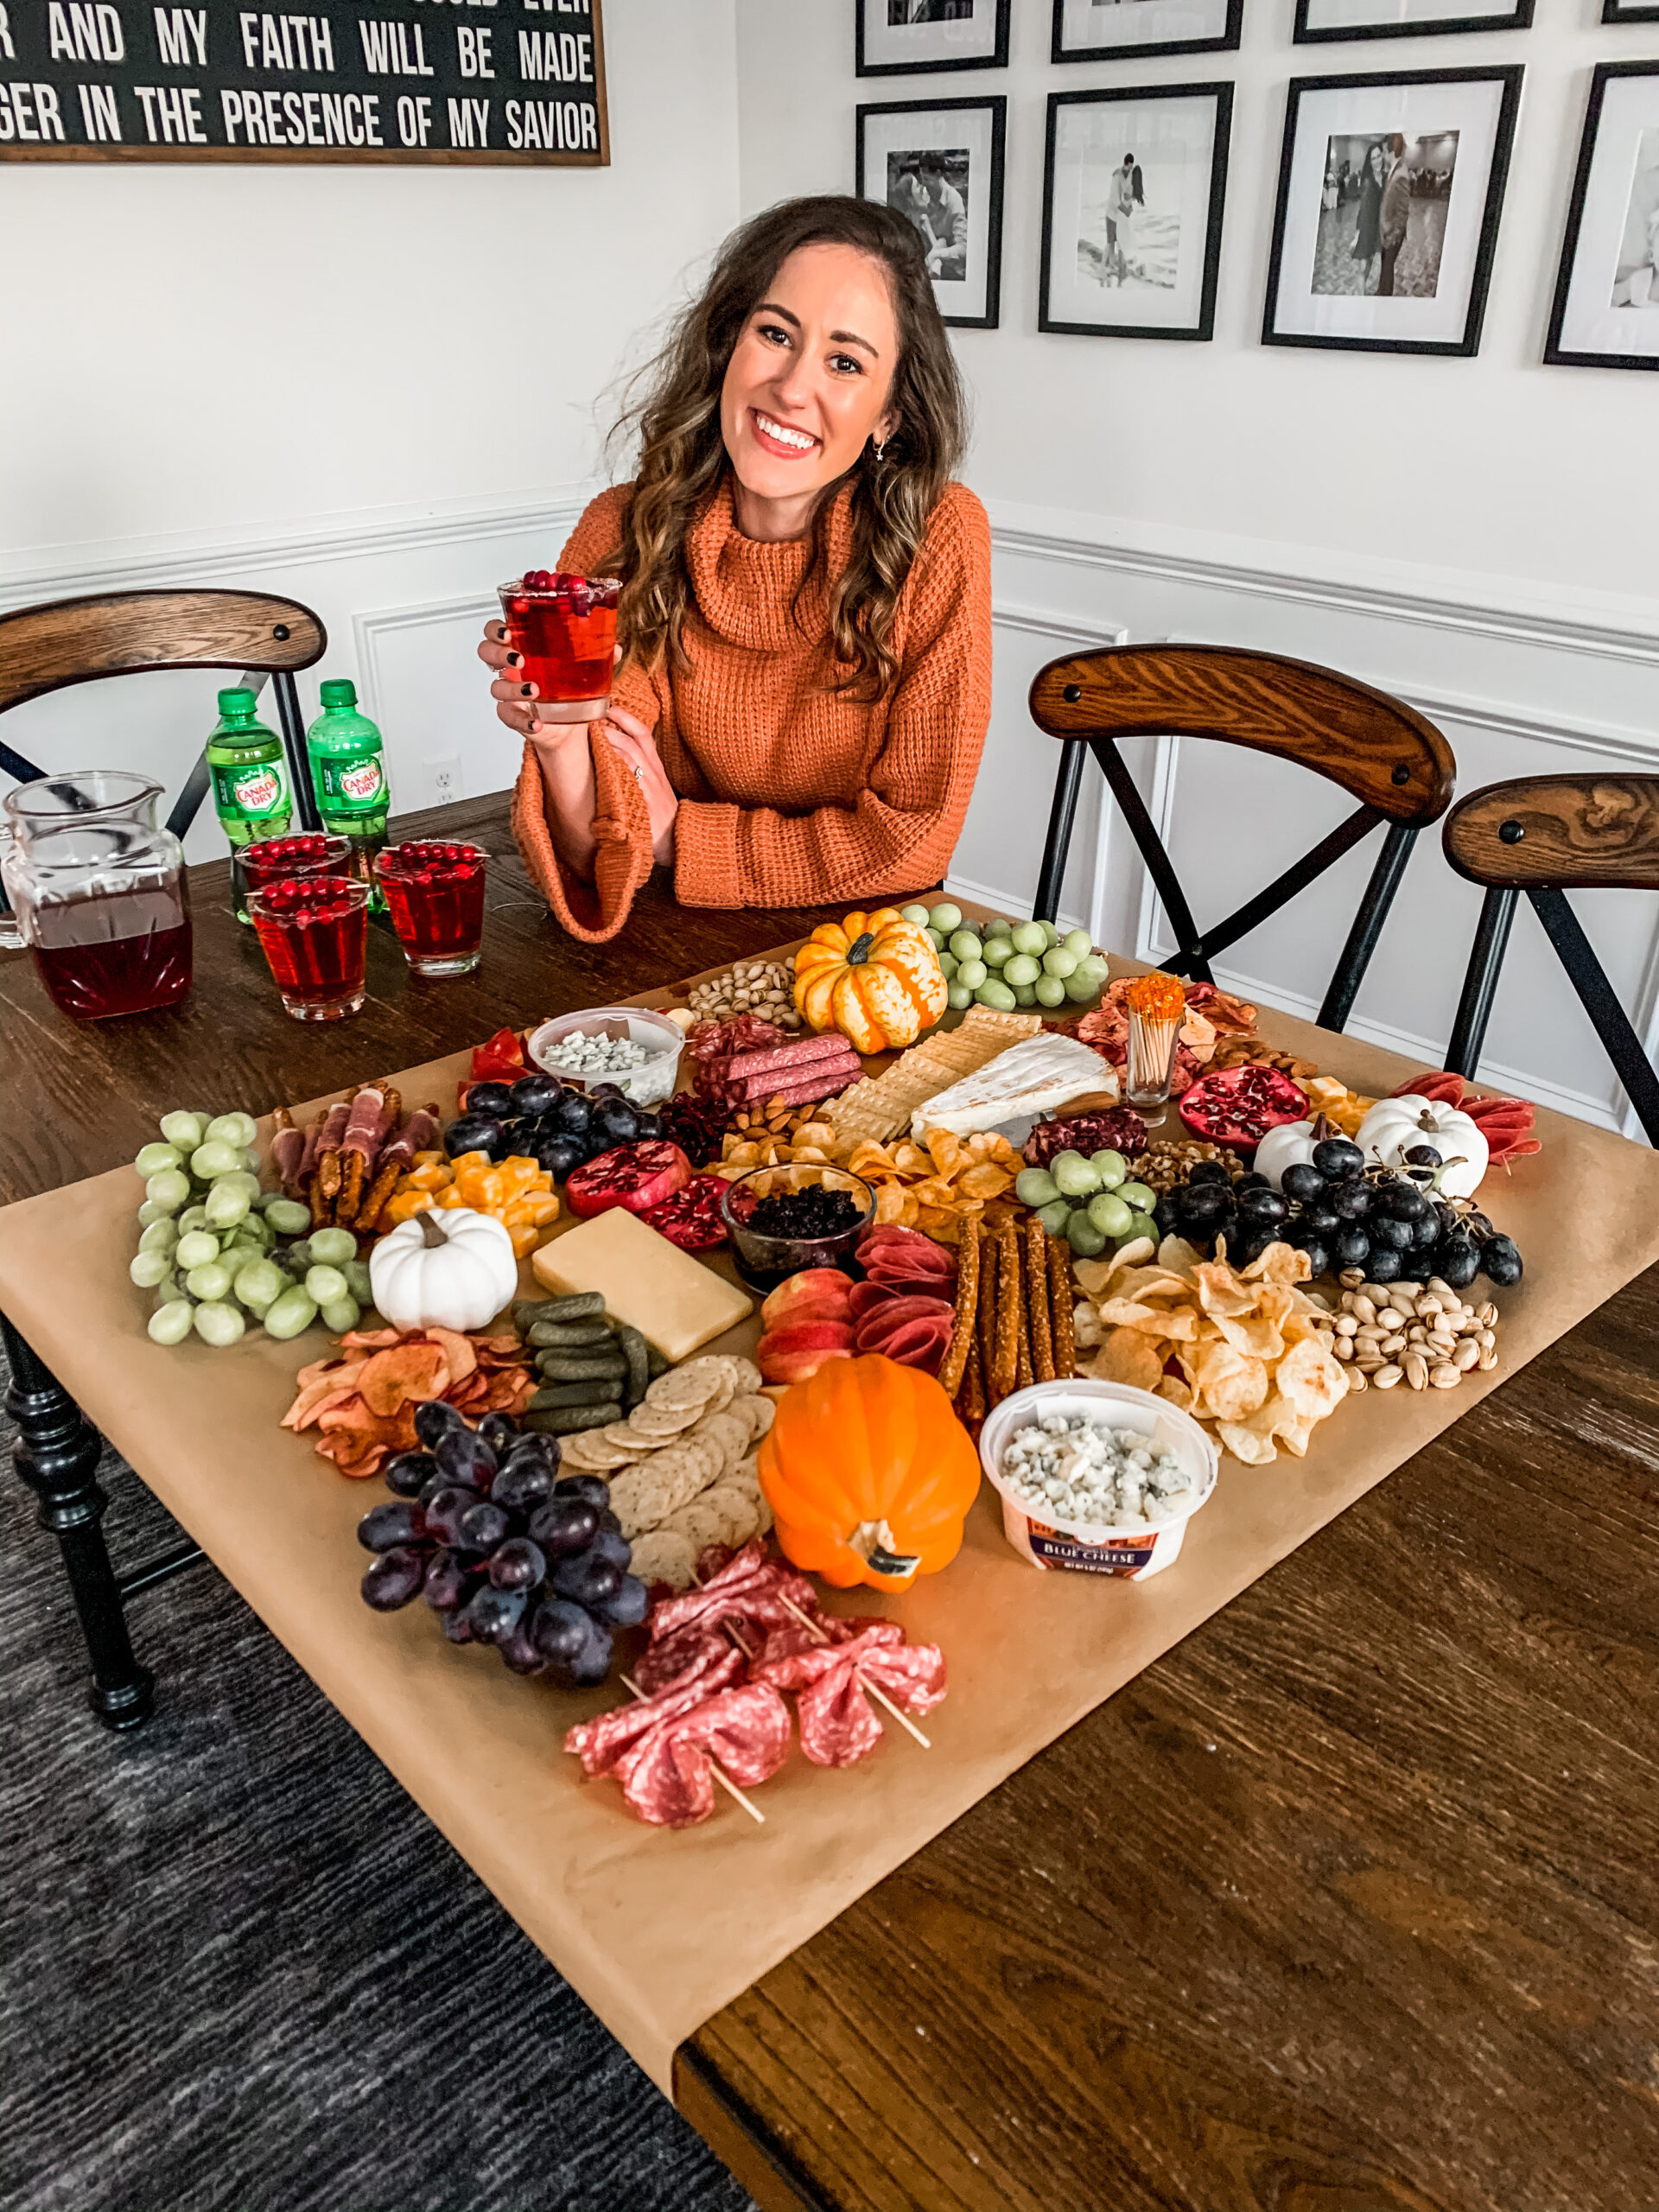 HARVEST CHARCUTERIE BOARD - How to Make a Charcuterie Board for Fall, with ShopRite on Coming Up Roses